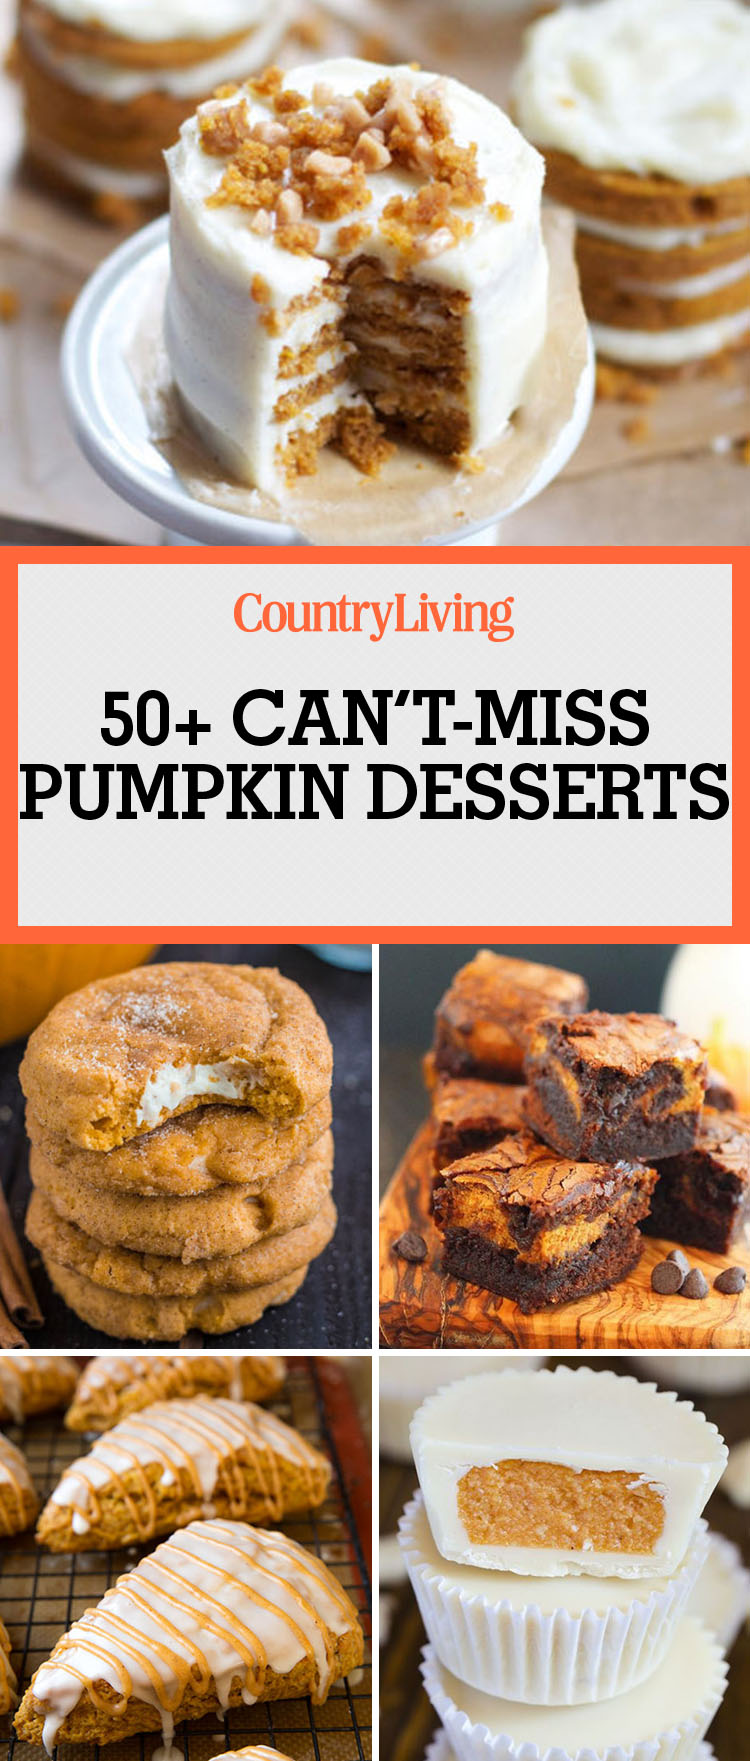 55 Easy Pumpkin Dessert Recipes